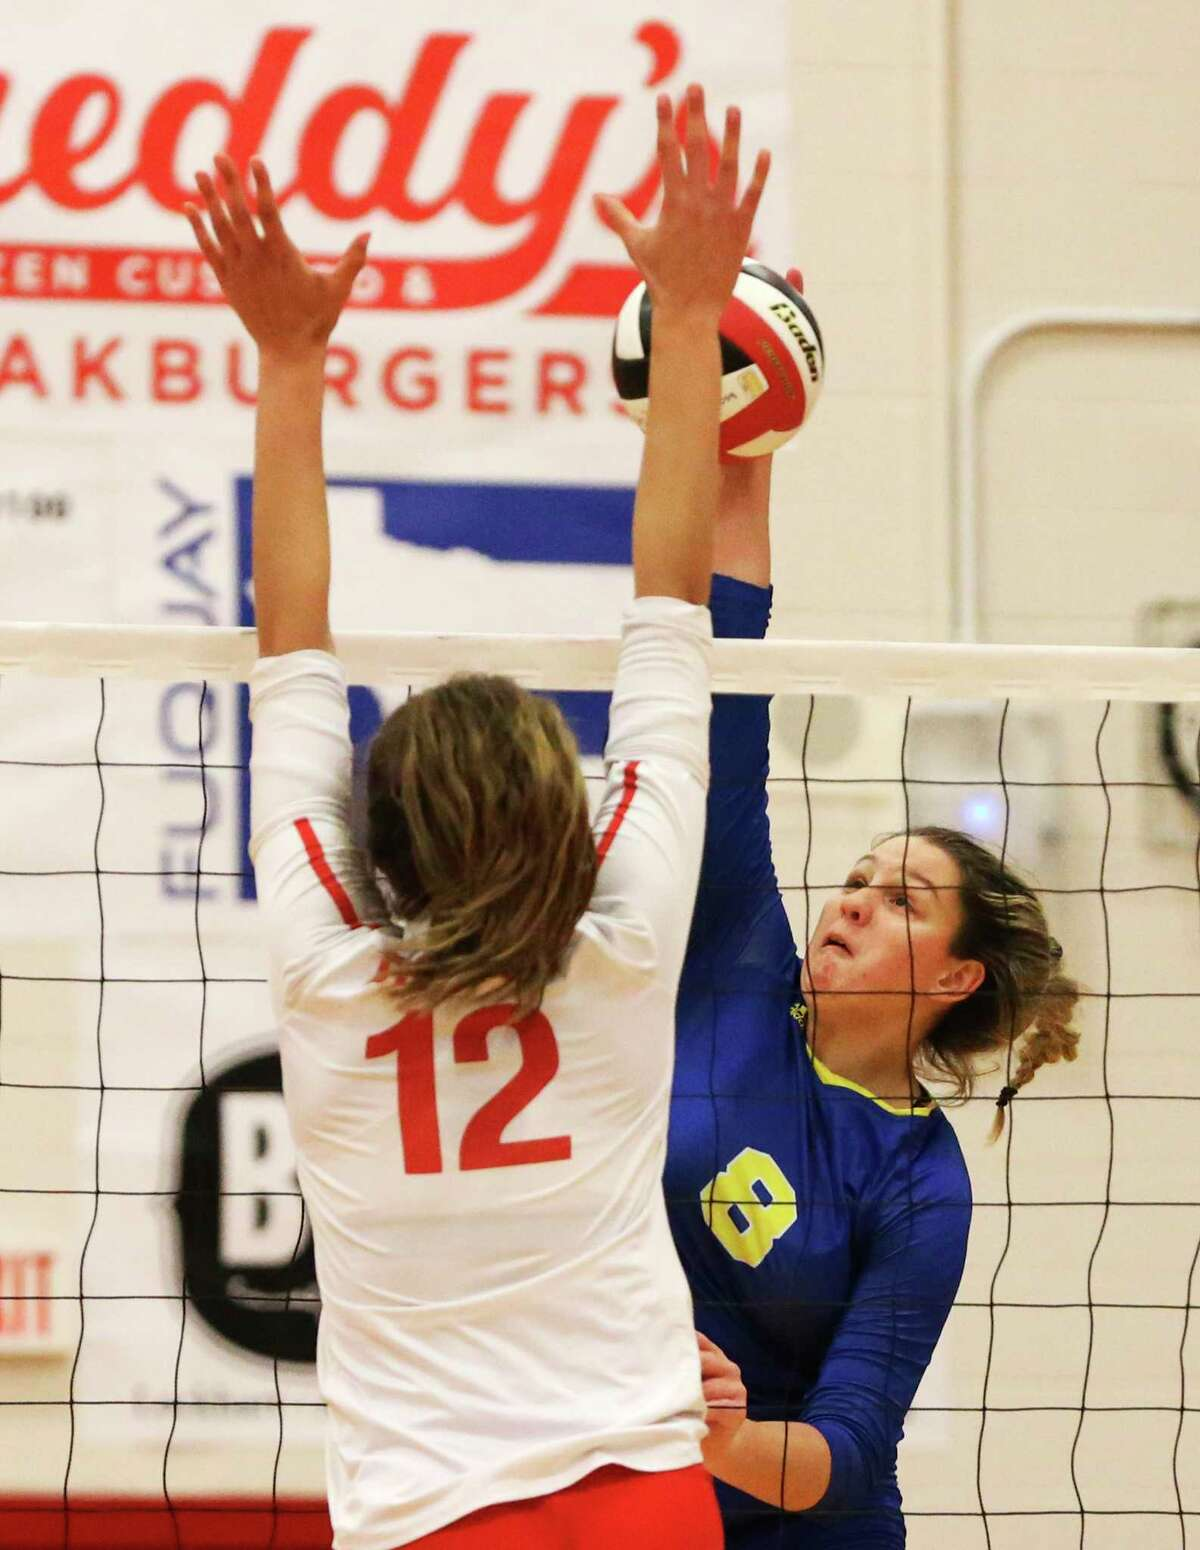 Clemens' Canada Buchanan (08) attempts a shot against New Braunfels Canyon's Angel Jones (12) in girls volleyball in New Braunfels on Tuesday, Oct. 15, 2019. Clemens defeated Canyon, 3-2 in games, to earn a victory. (Kin Man Hui/San Antonio Express-News)